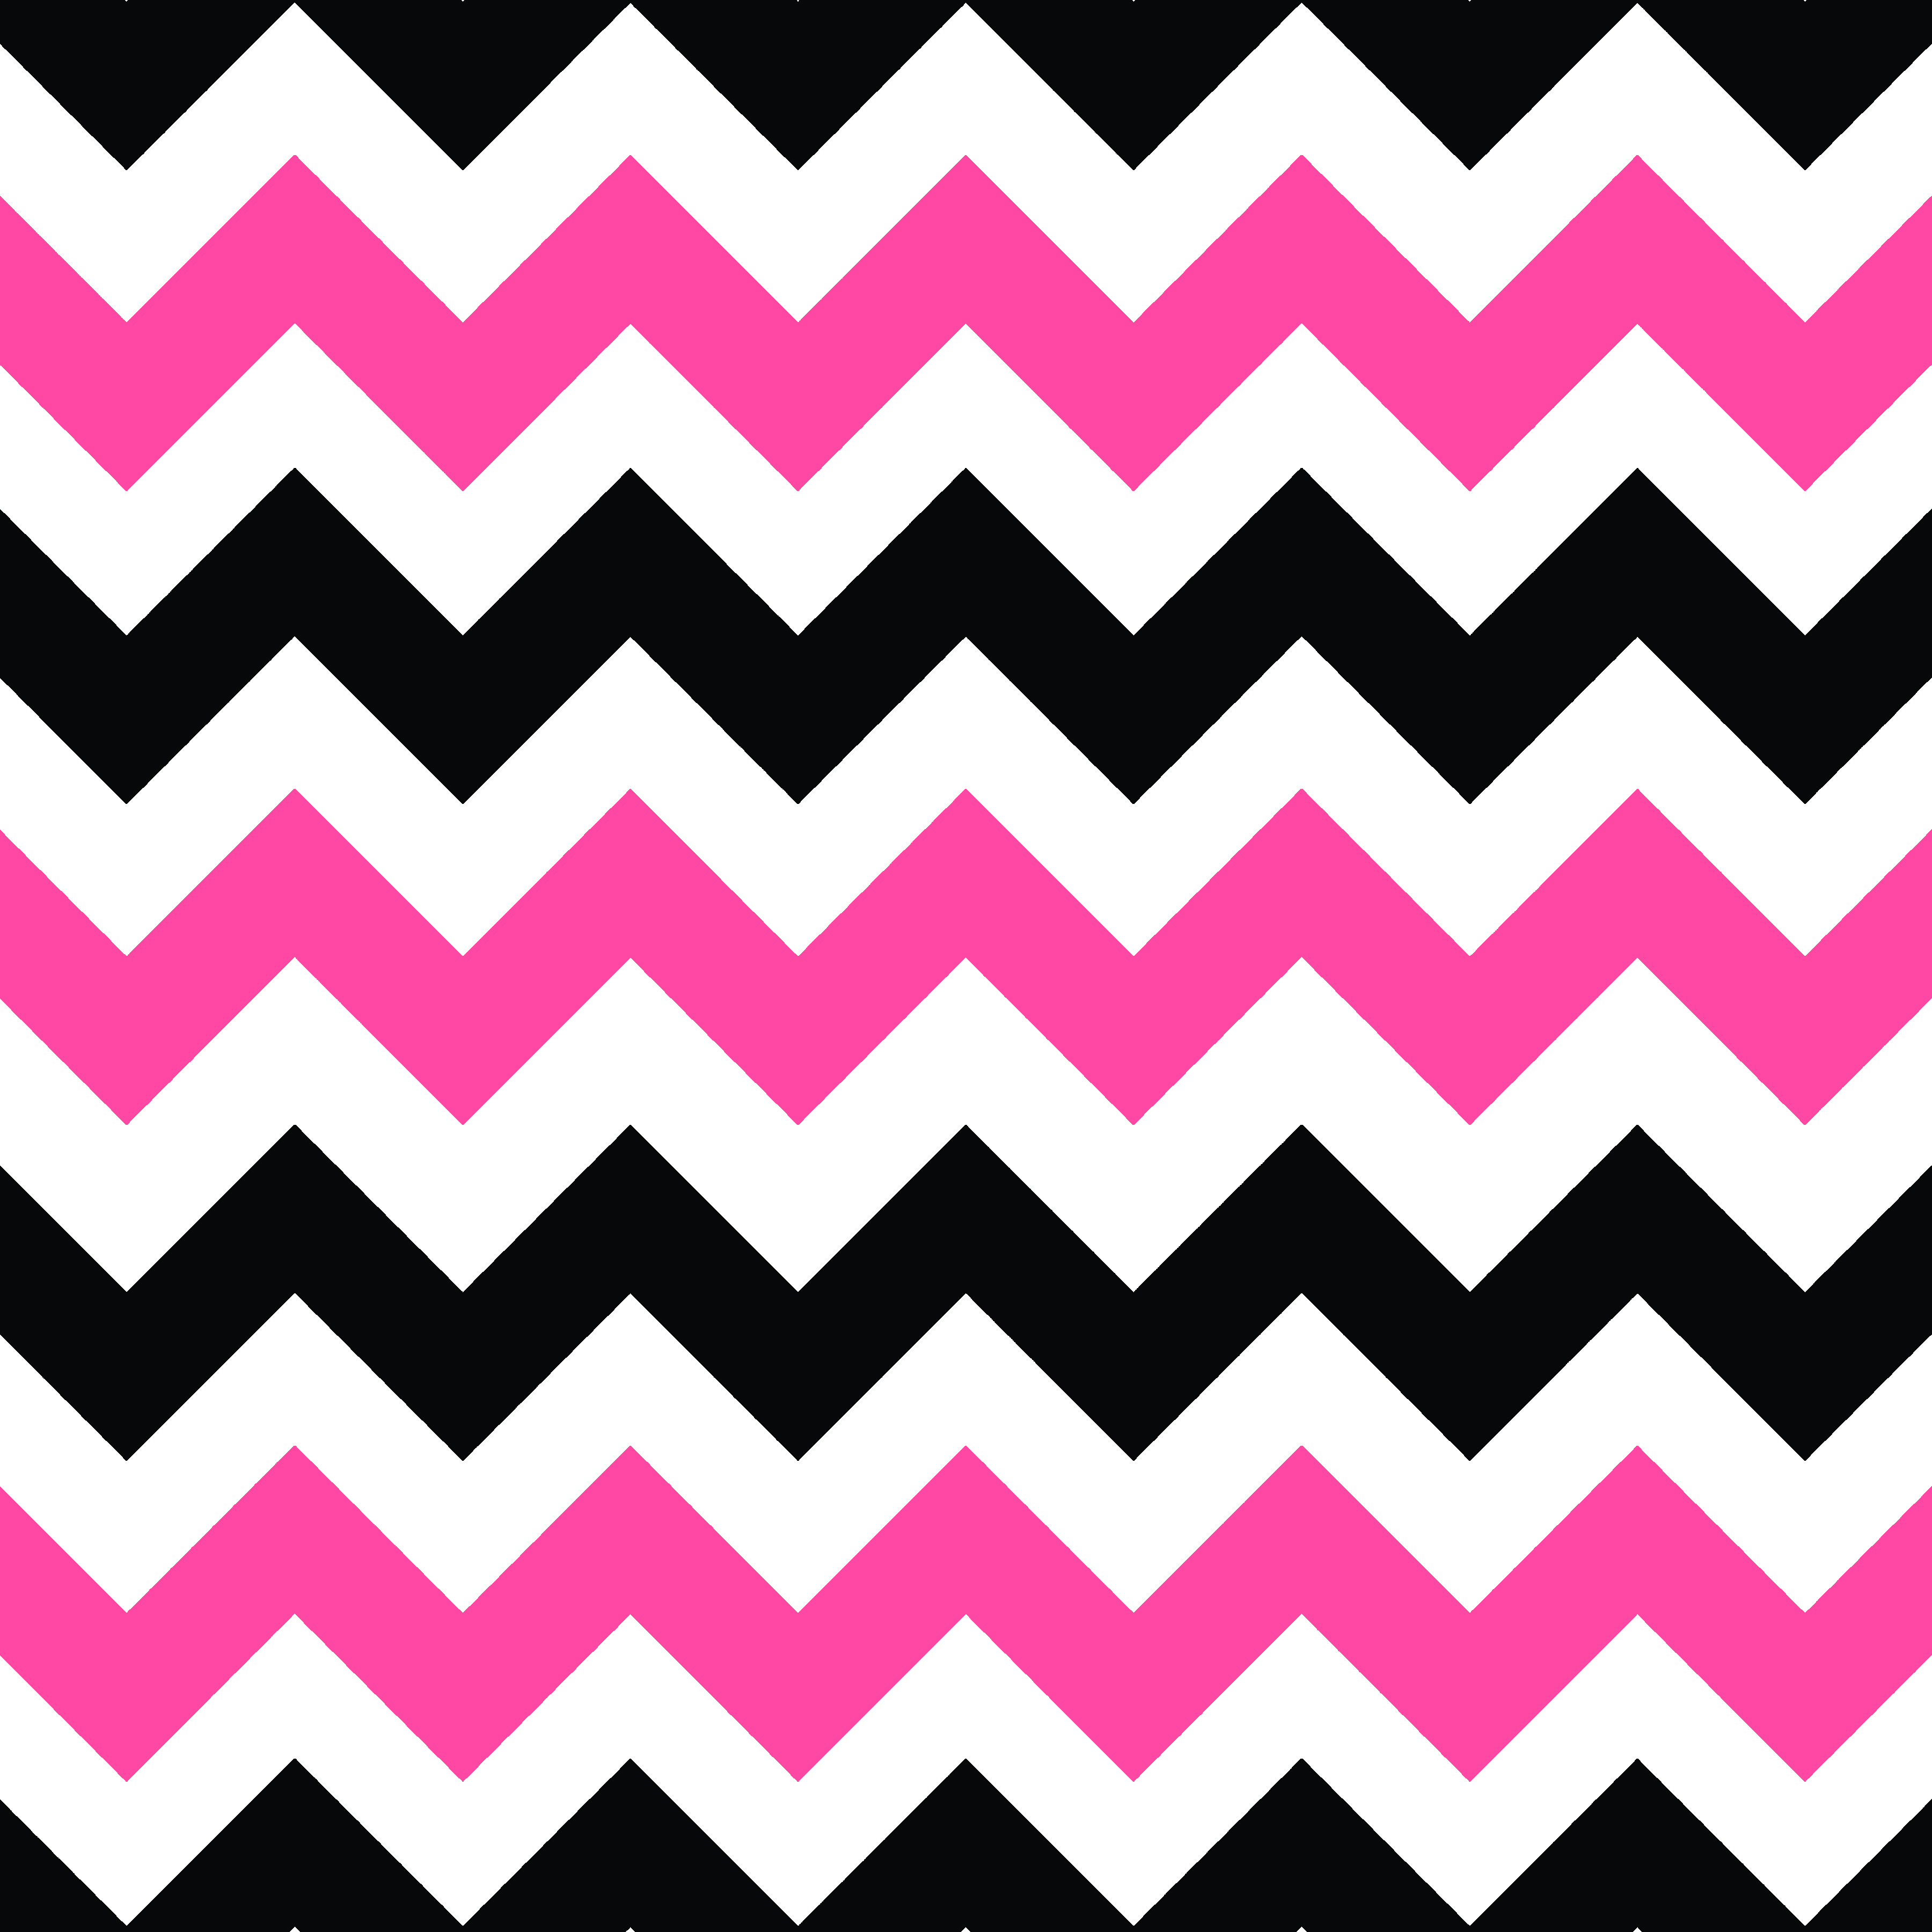 Pink And White Zig Zag Wallpaper